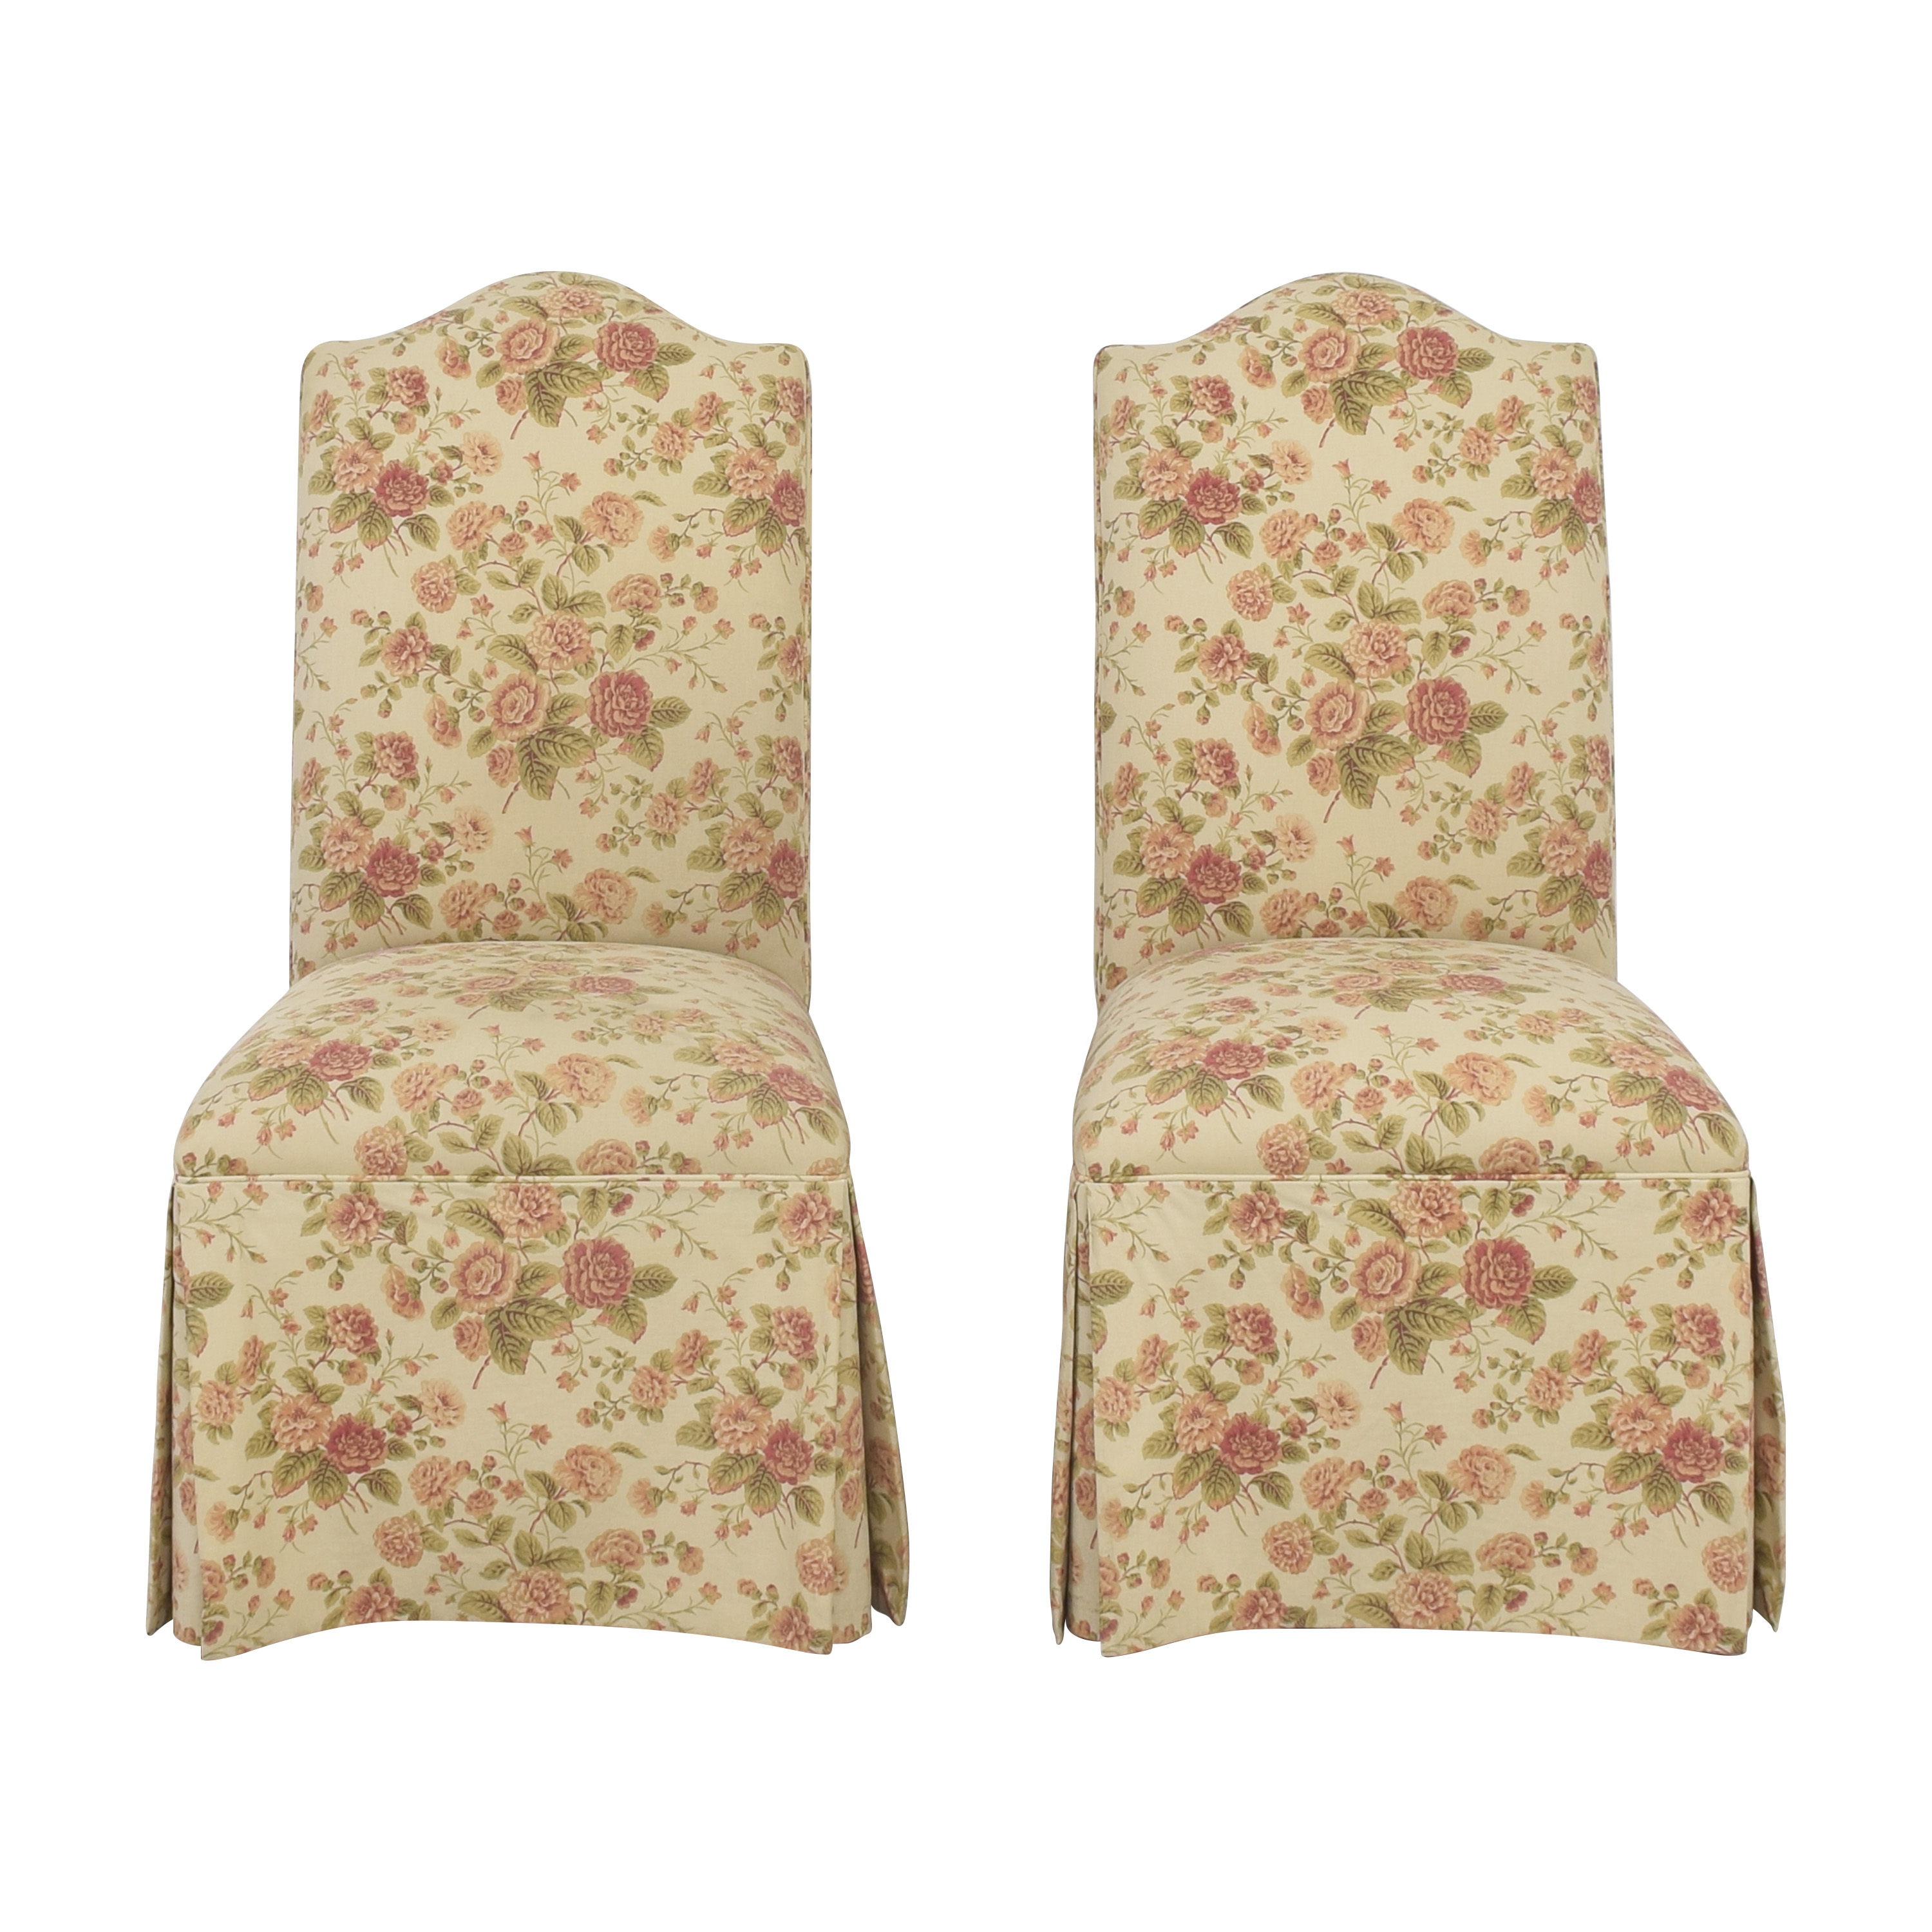 buy Ethan Allen Olivia Dining Chairs Ethan Allen Chairs